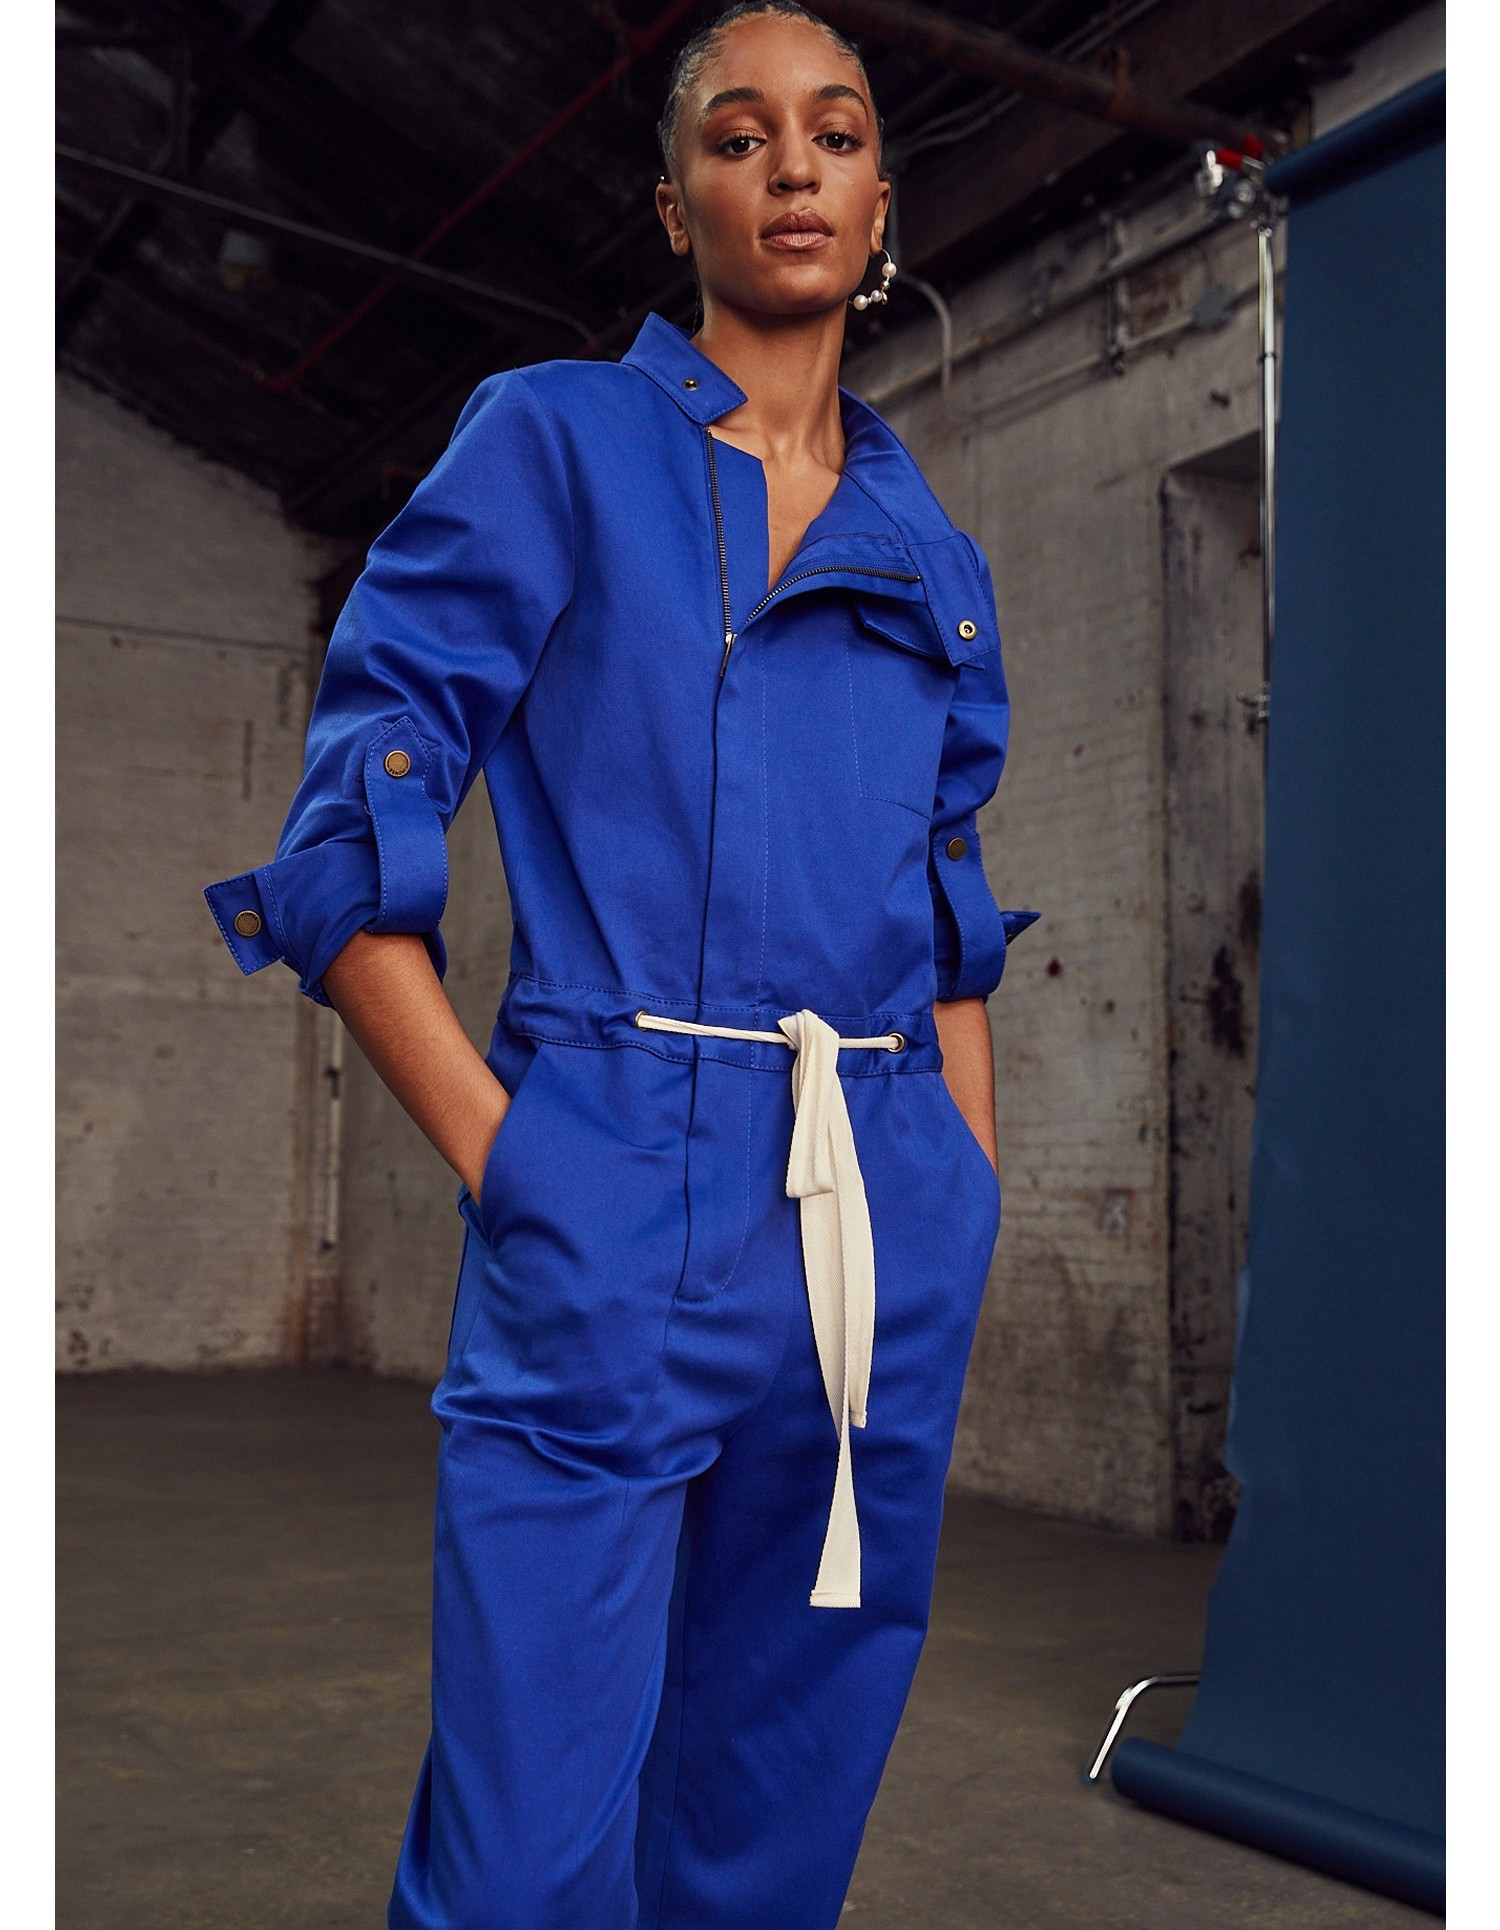 MONSE Racer Jumpsuit in Electric Blue on Model Full Front View